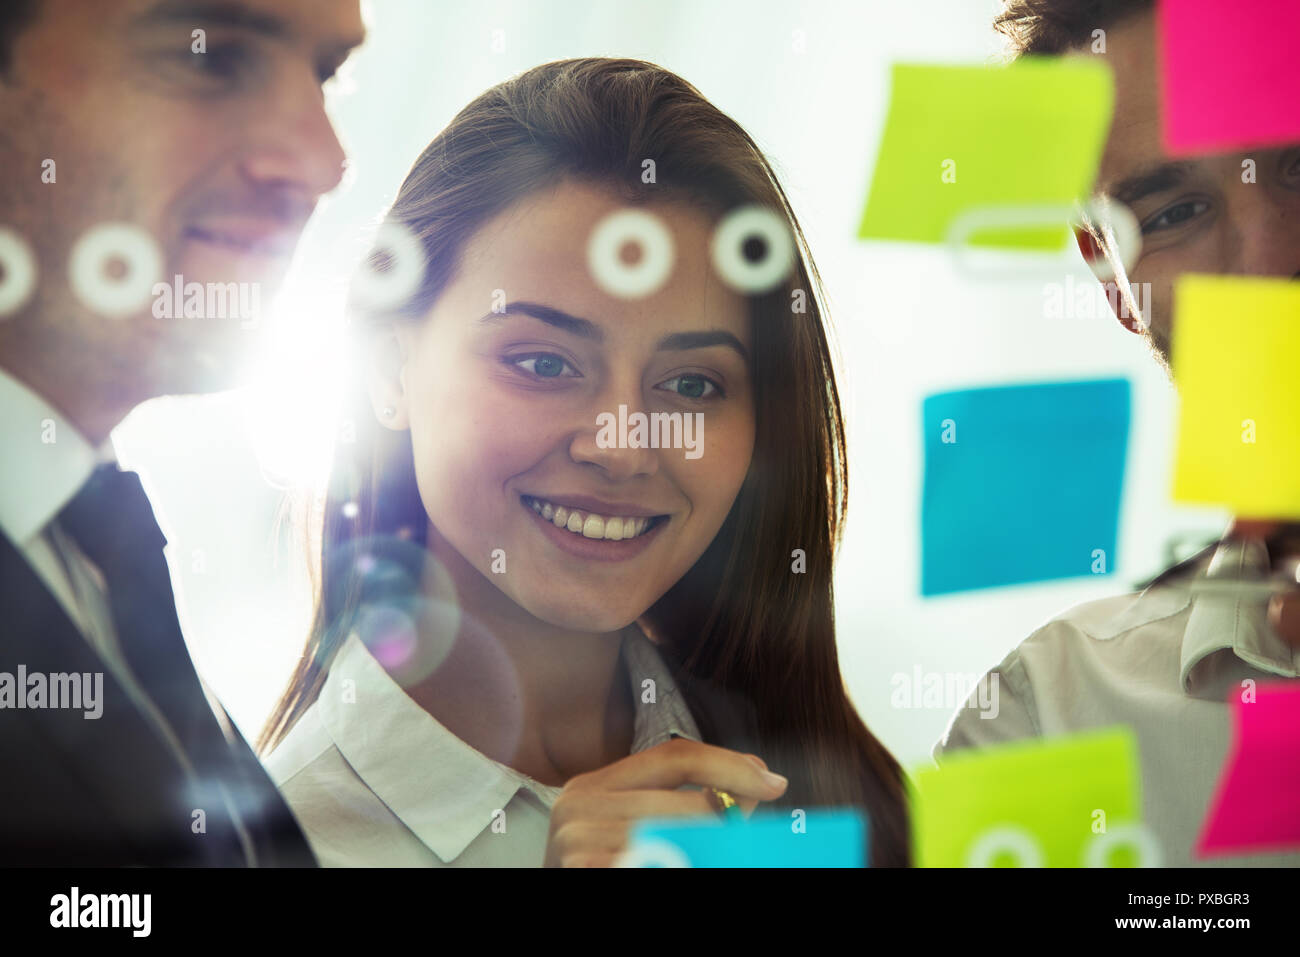 Happy girl works with colleagues in office with post it notes in foreground. Concept of teamwork and partnership - Stock Image